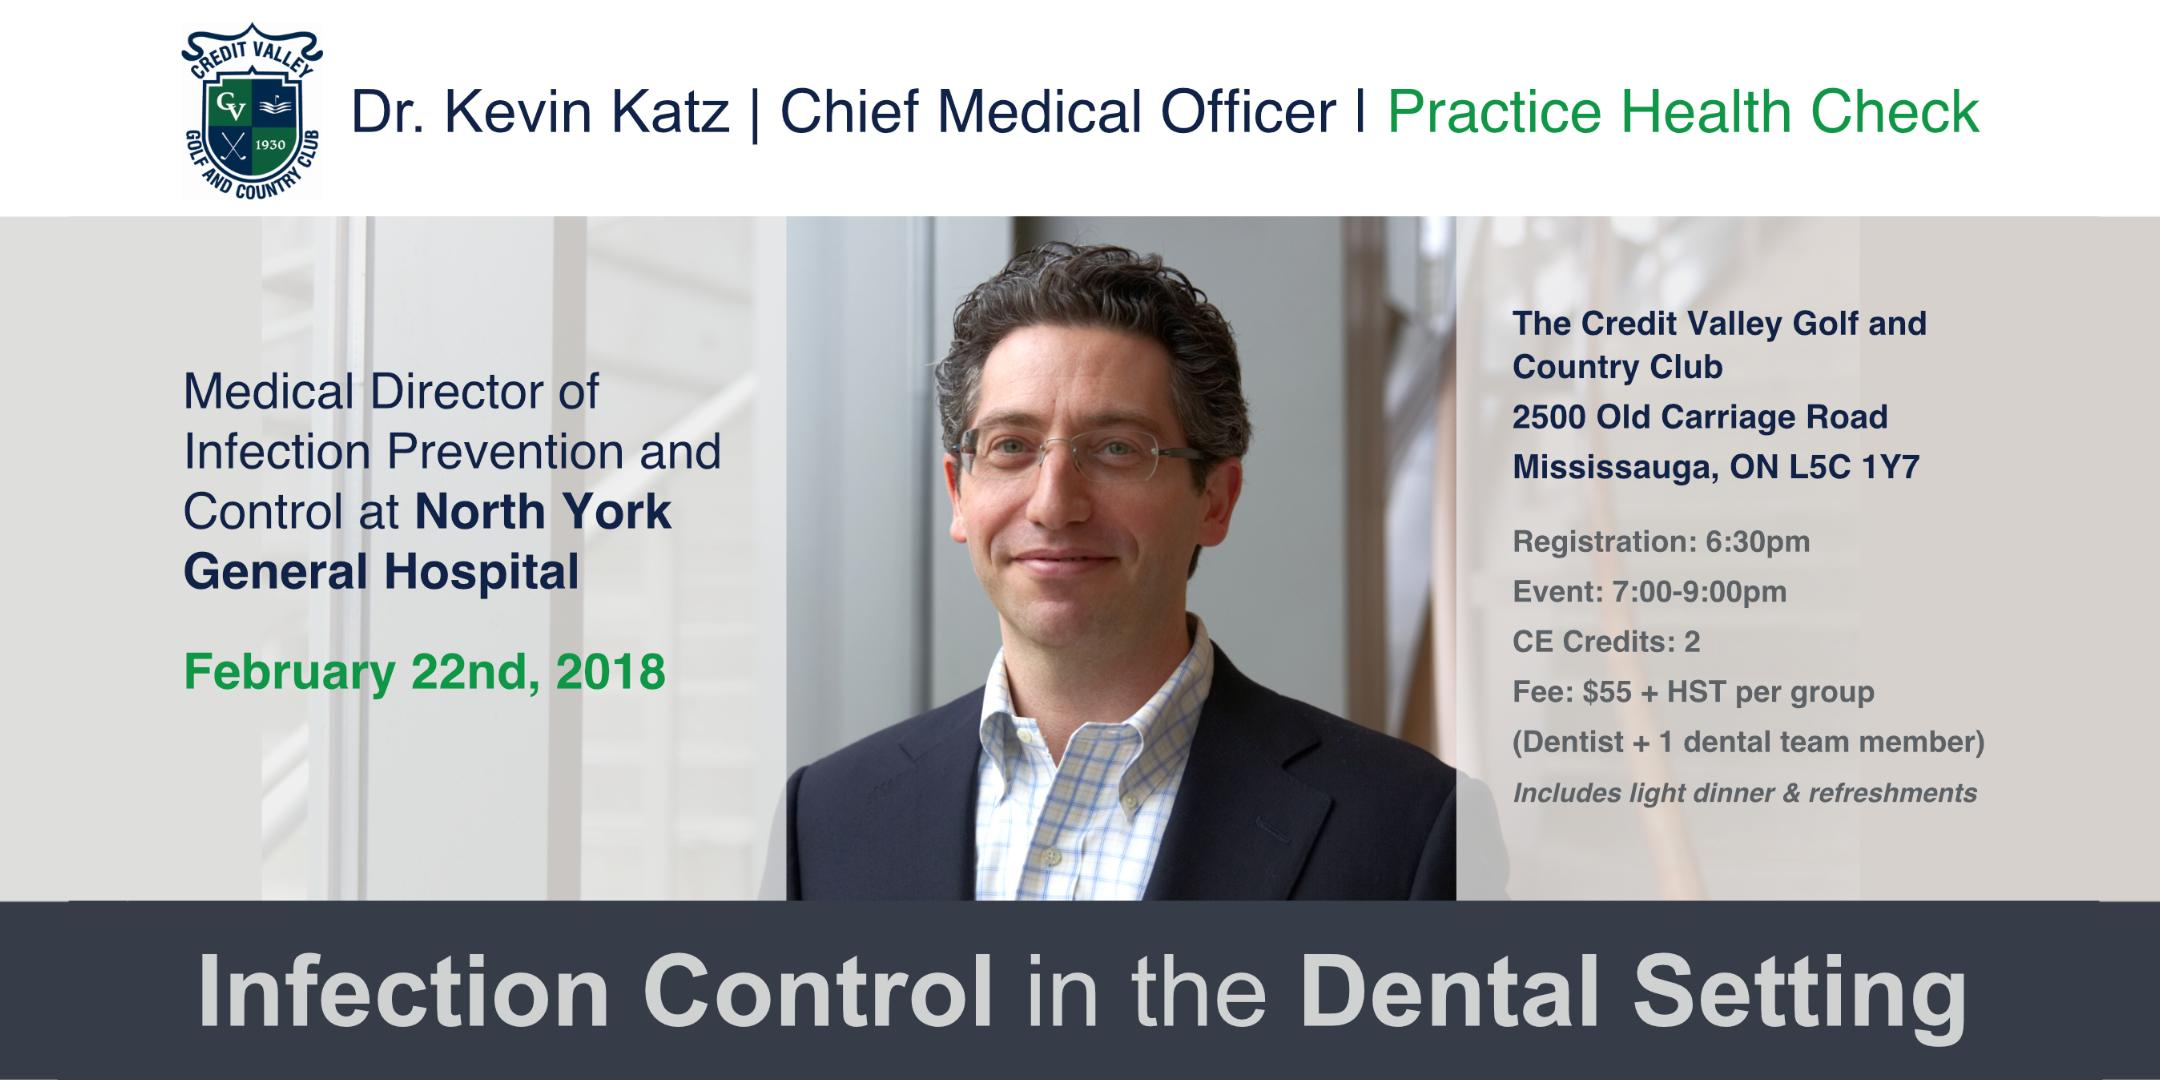 Infection Control in the Dental Setting with